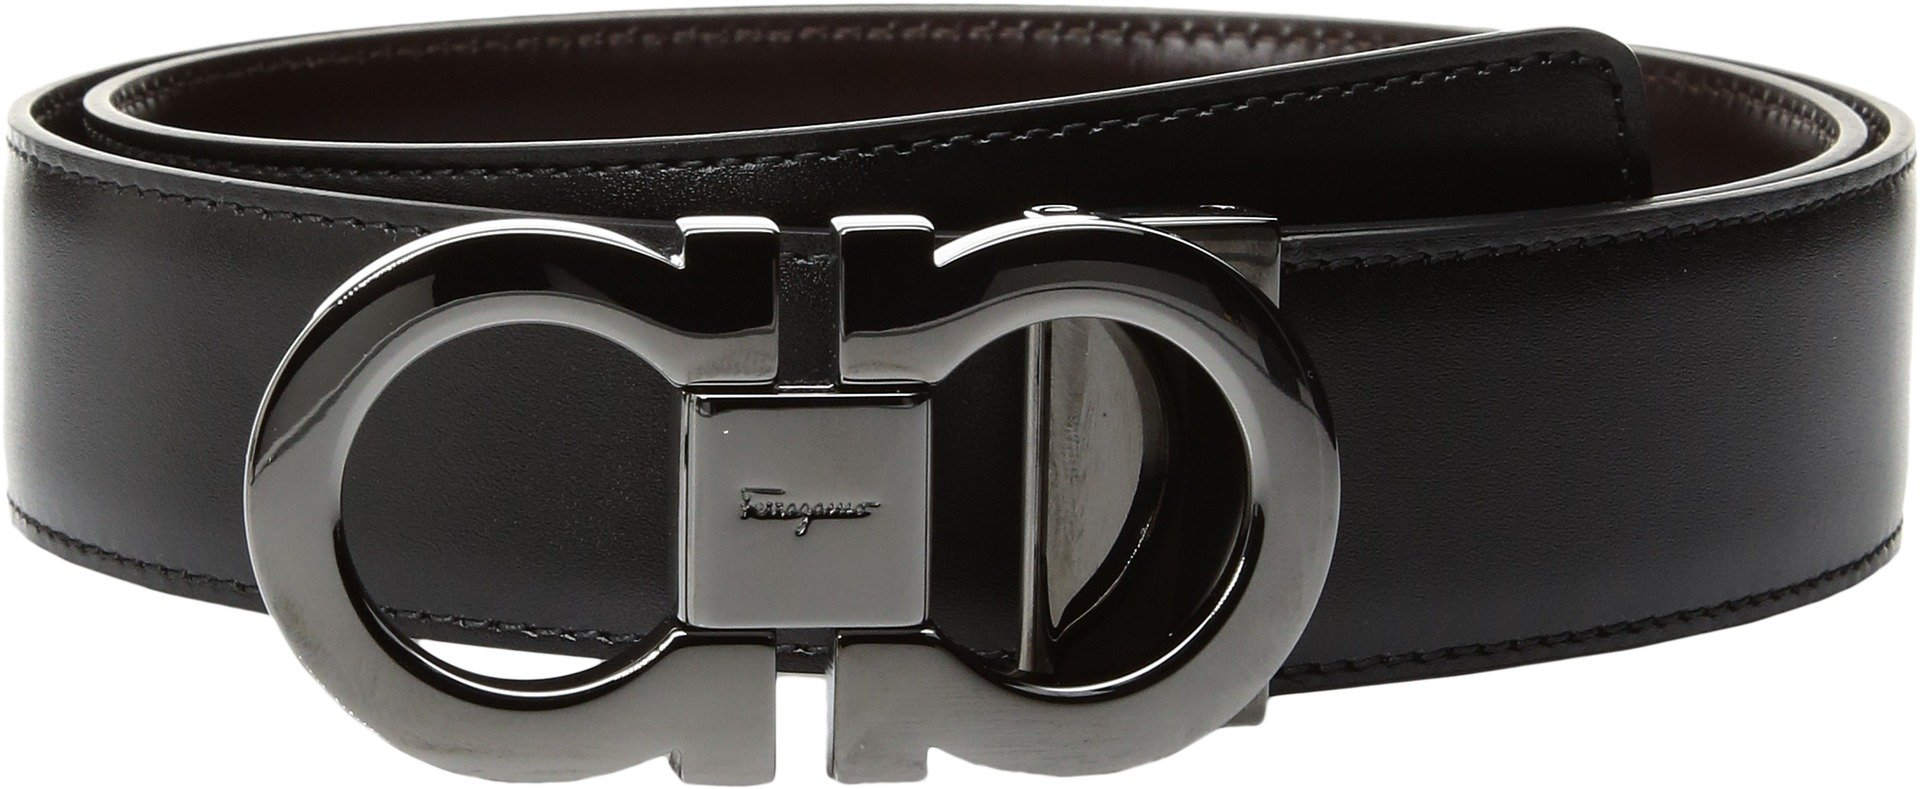 Salvatore Ferragamo Men's Double Gancini Reversible Belt, Black/Auburn, 36 by Salvatore Ferragamo (Image #1)